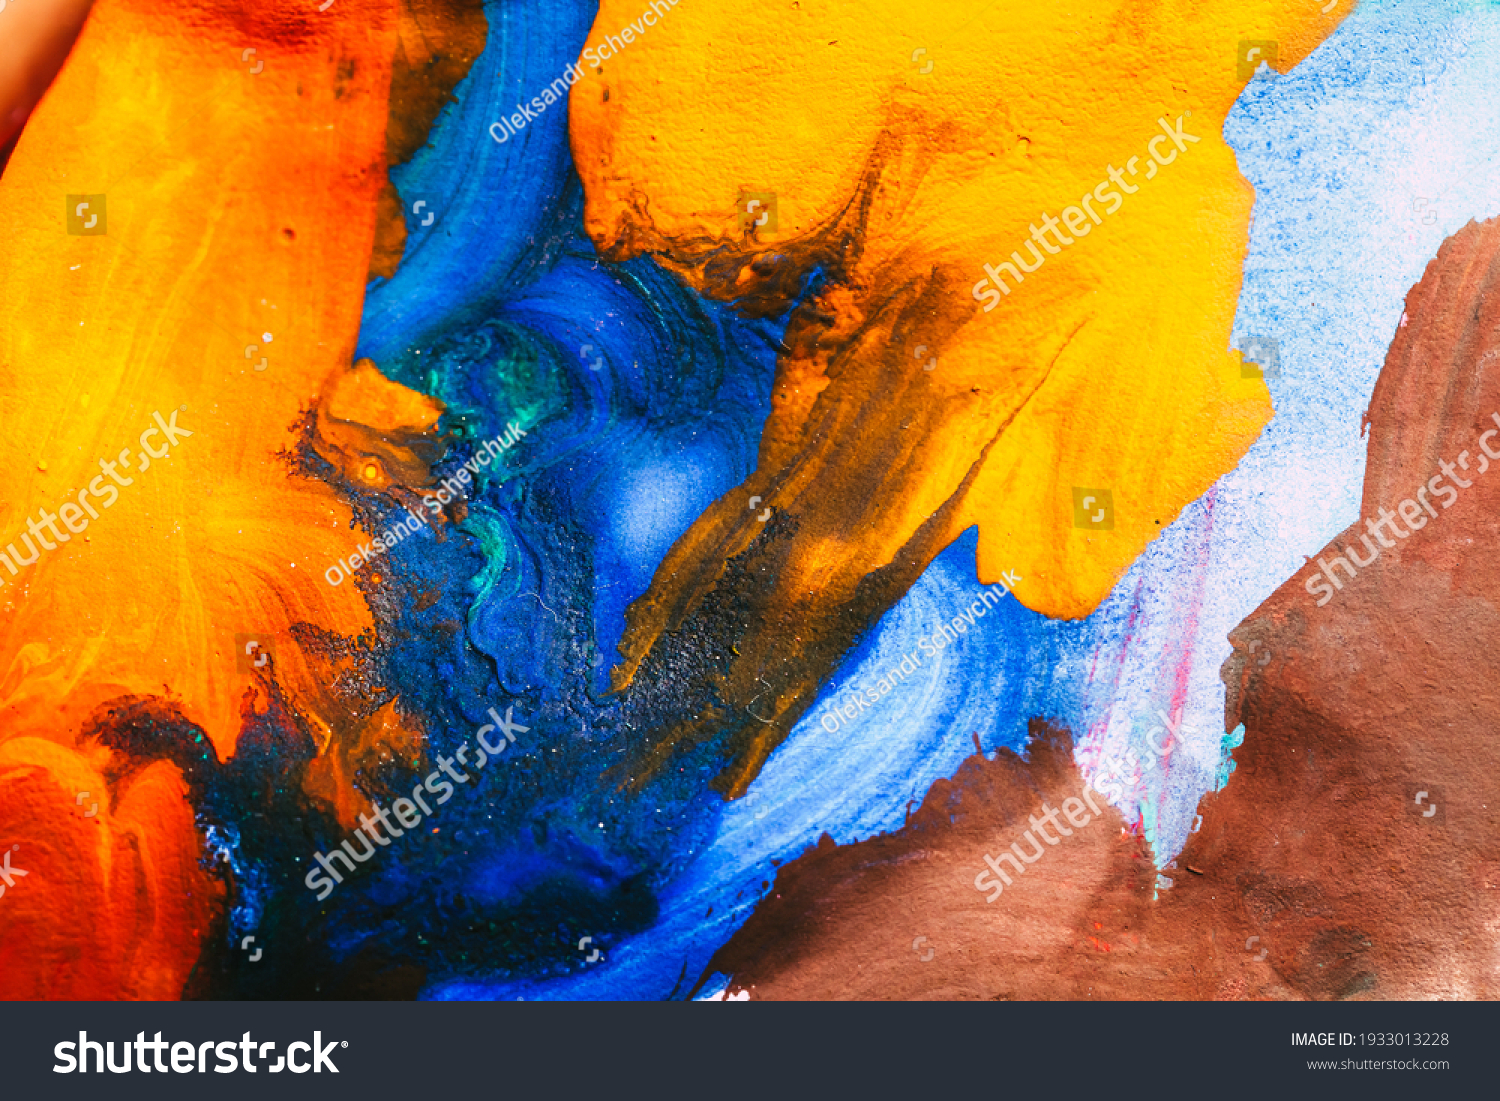 abstract oil paint texture on canvas, background #1933013228